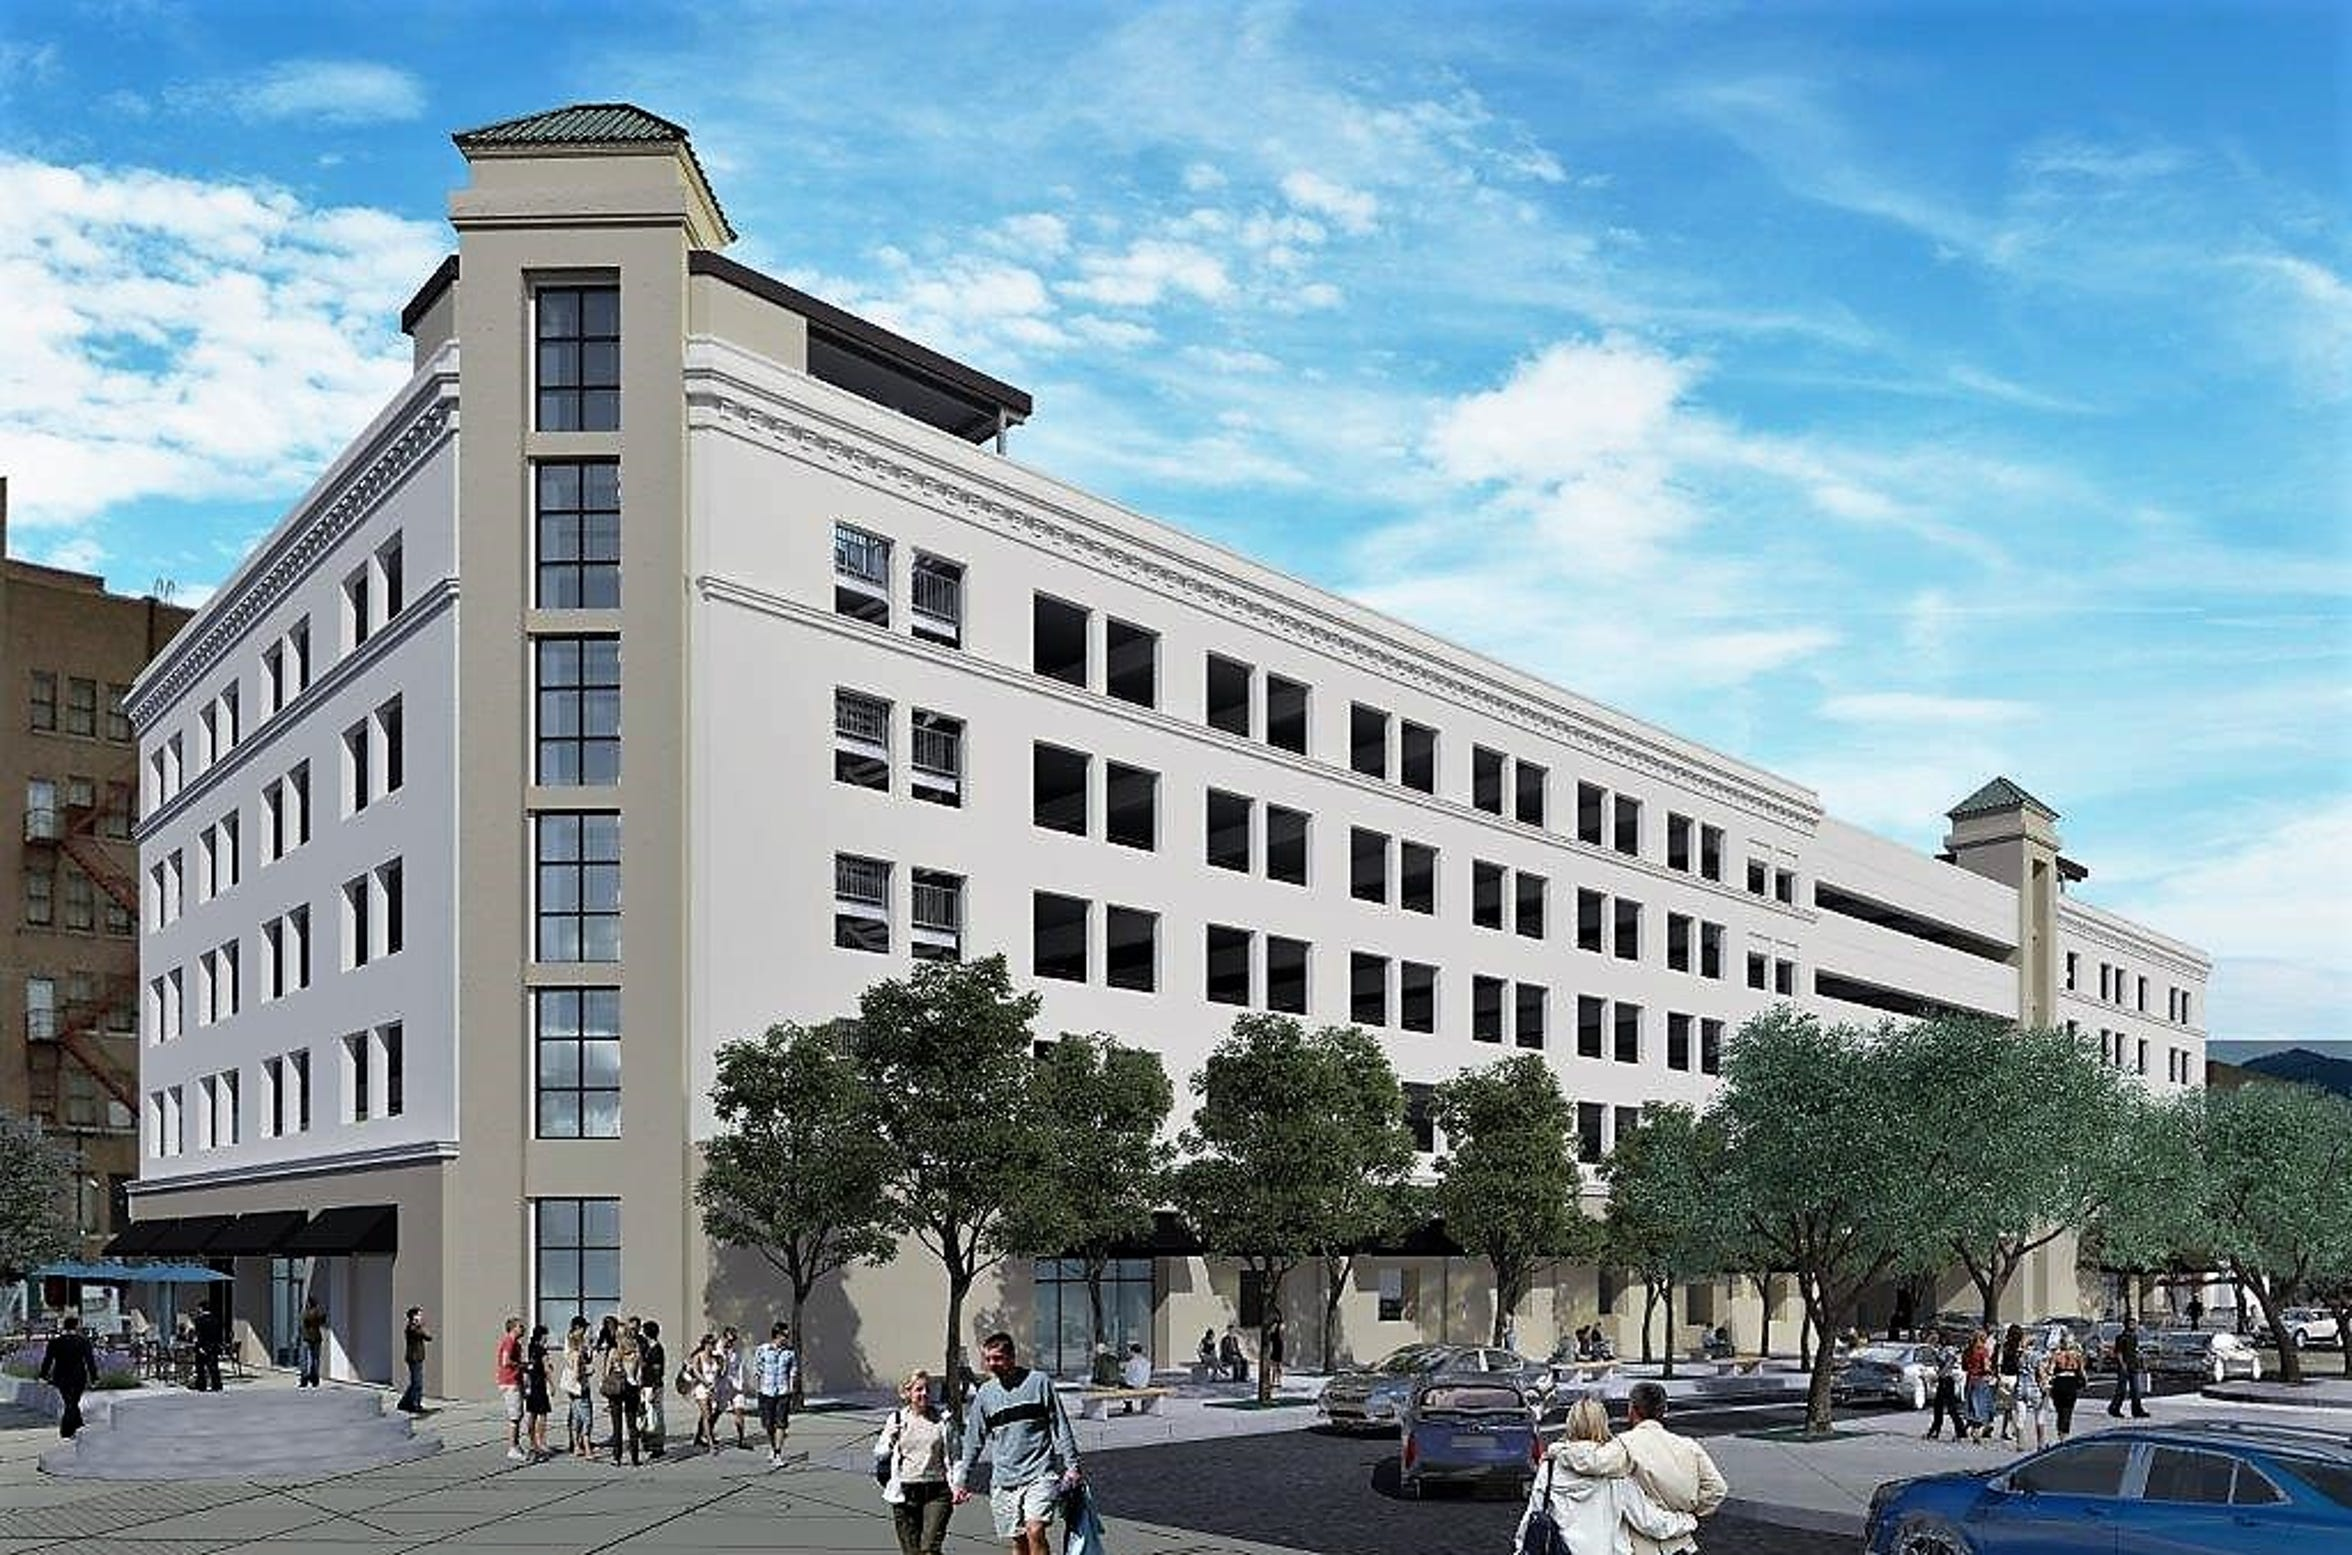 A rendering of the Plaza Hotel parking garage, now being built on two formerly vacant lots along South El Paso Street. The portion of the garage spanning San Antonio Avenue is the flat, windowless floors next to tower at far right of image.